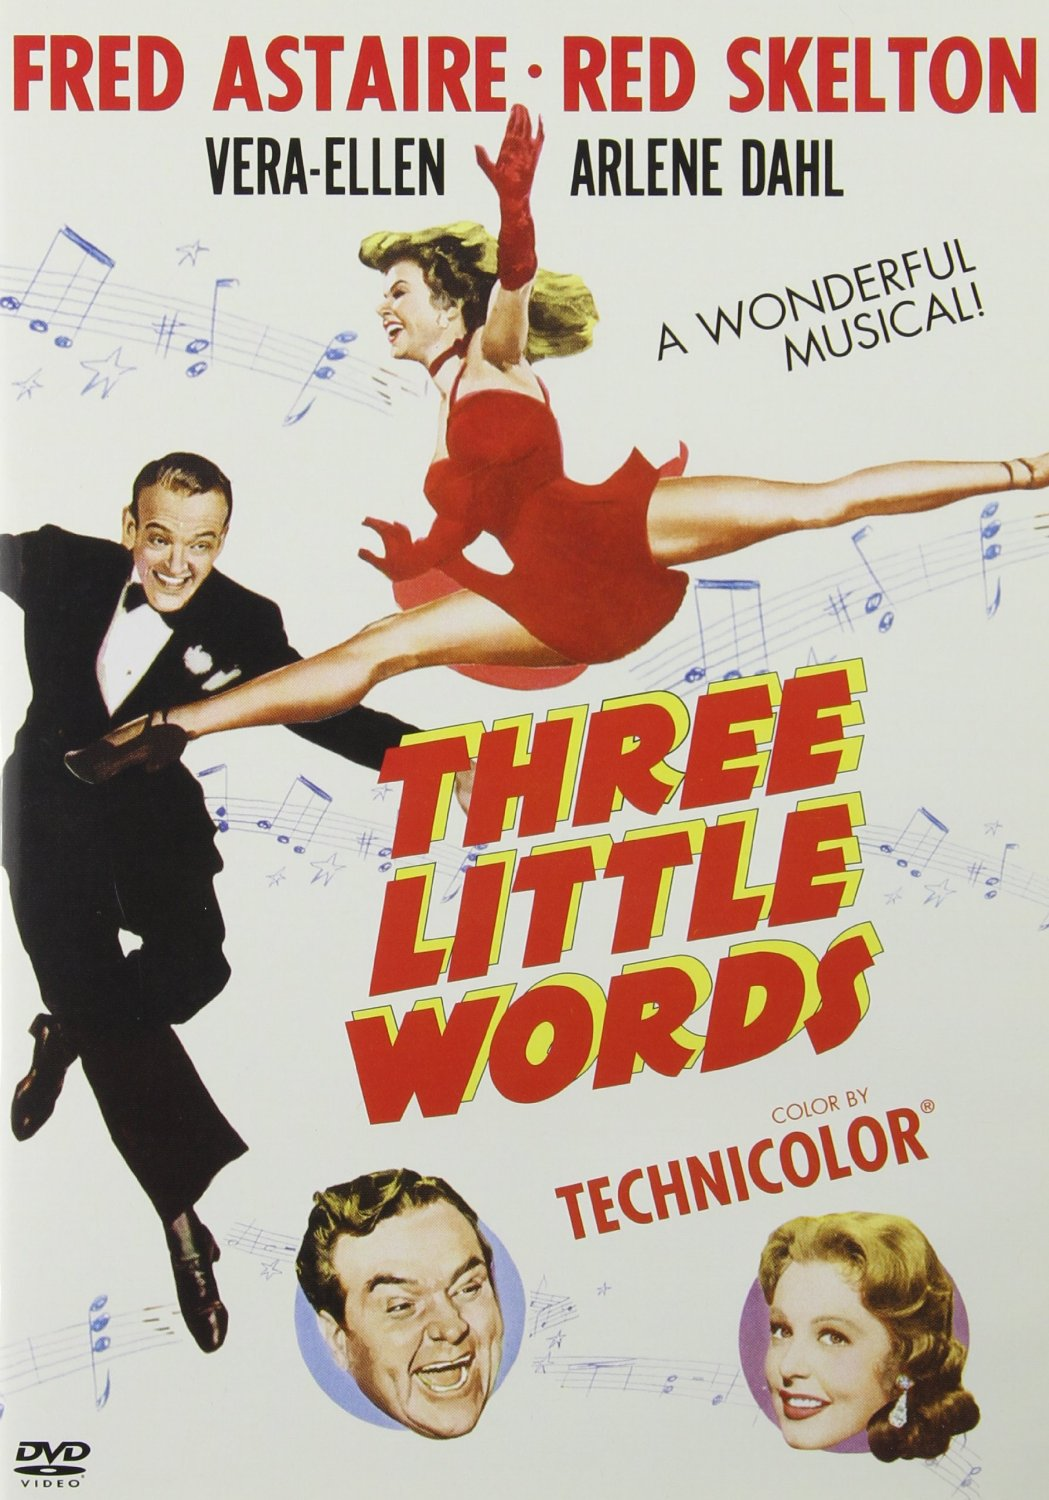 Three Little Words, Fred Astaire, Red Skelton, Vera-Ellen, Arlene Dahl, 1950